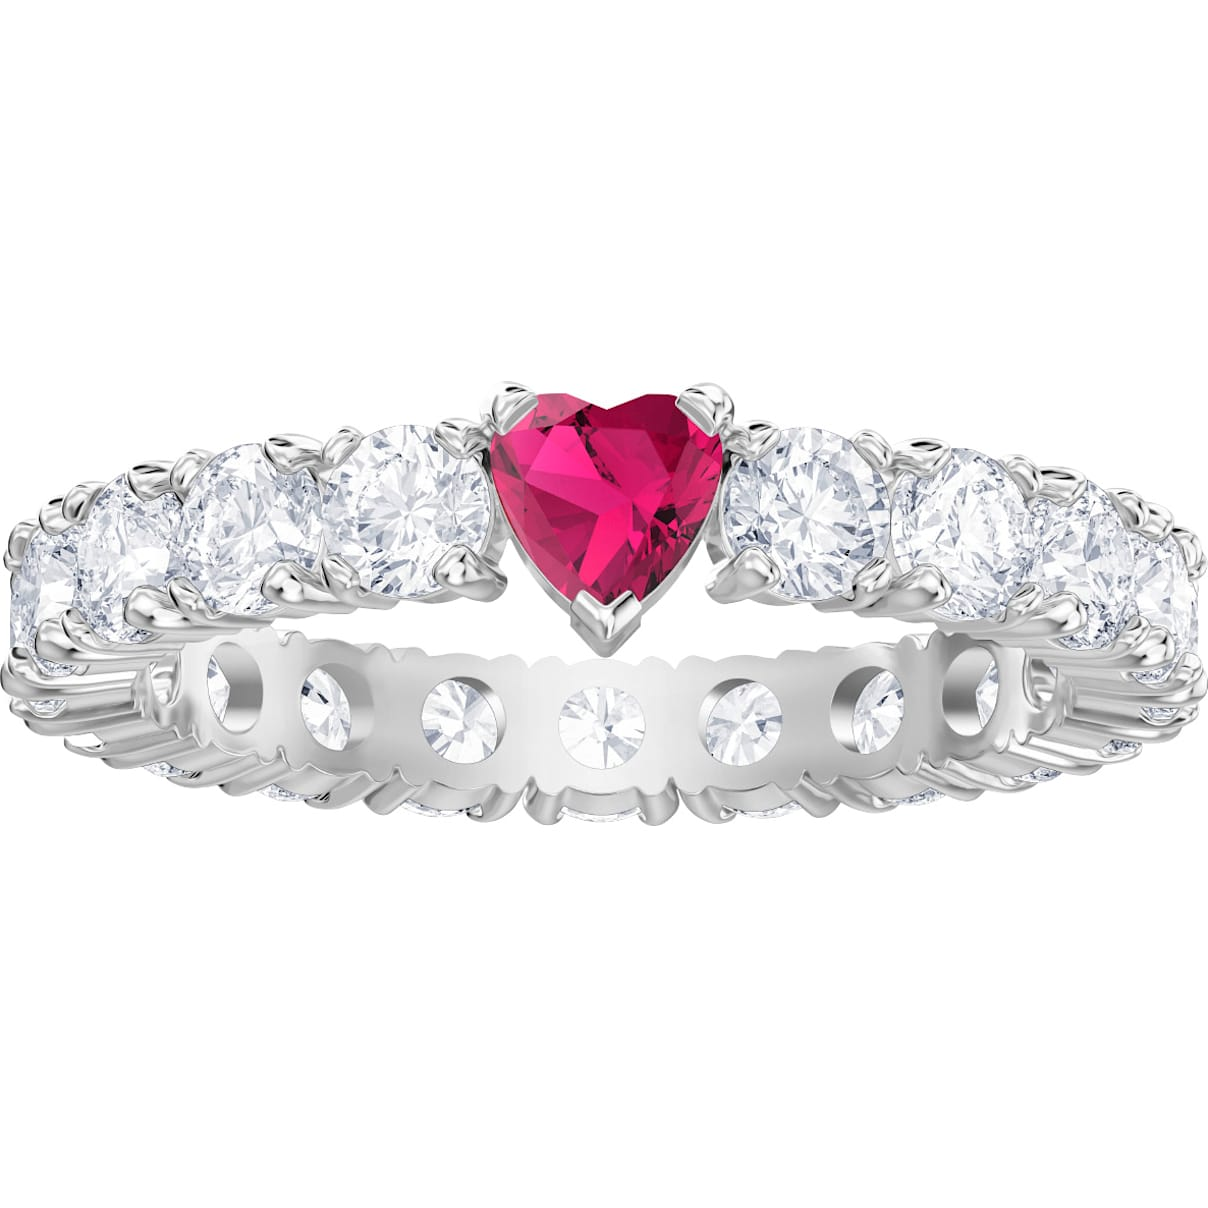 Swarovski Love Ring, White, Rhodium plated